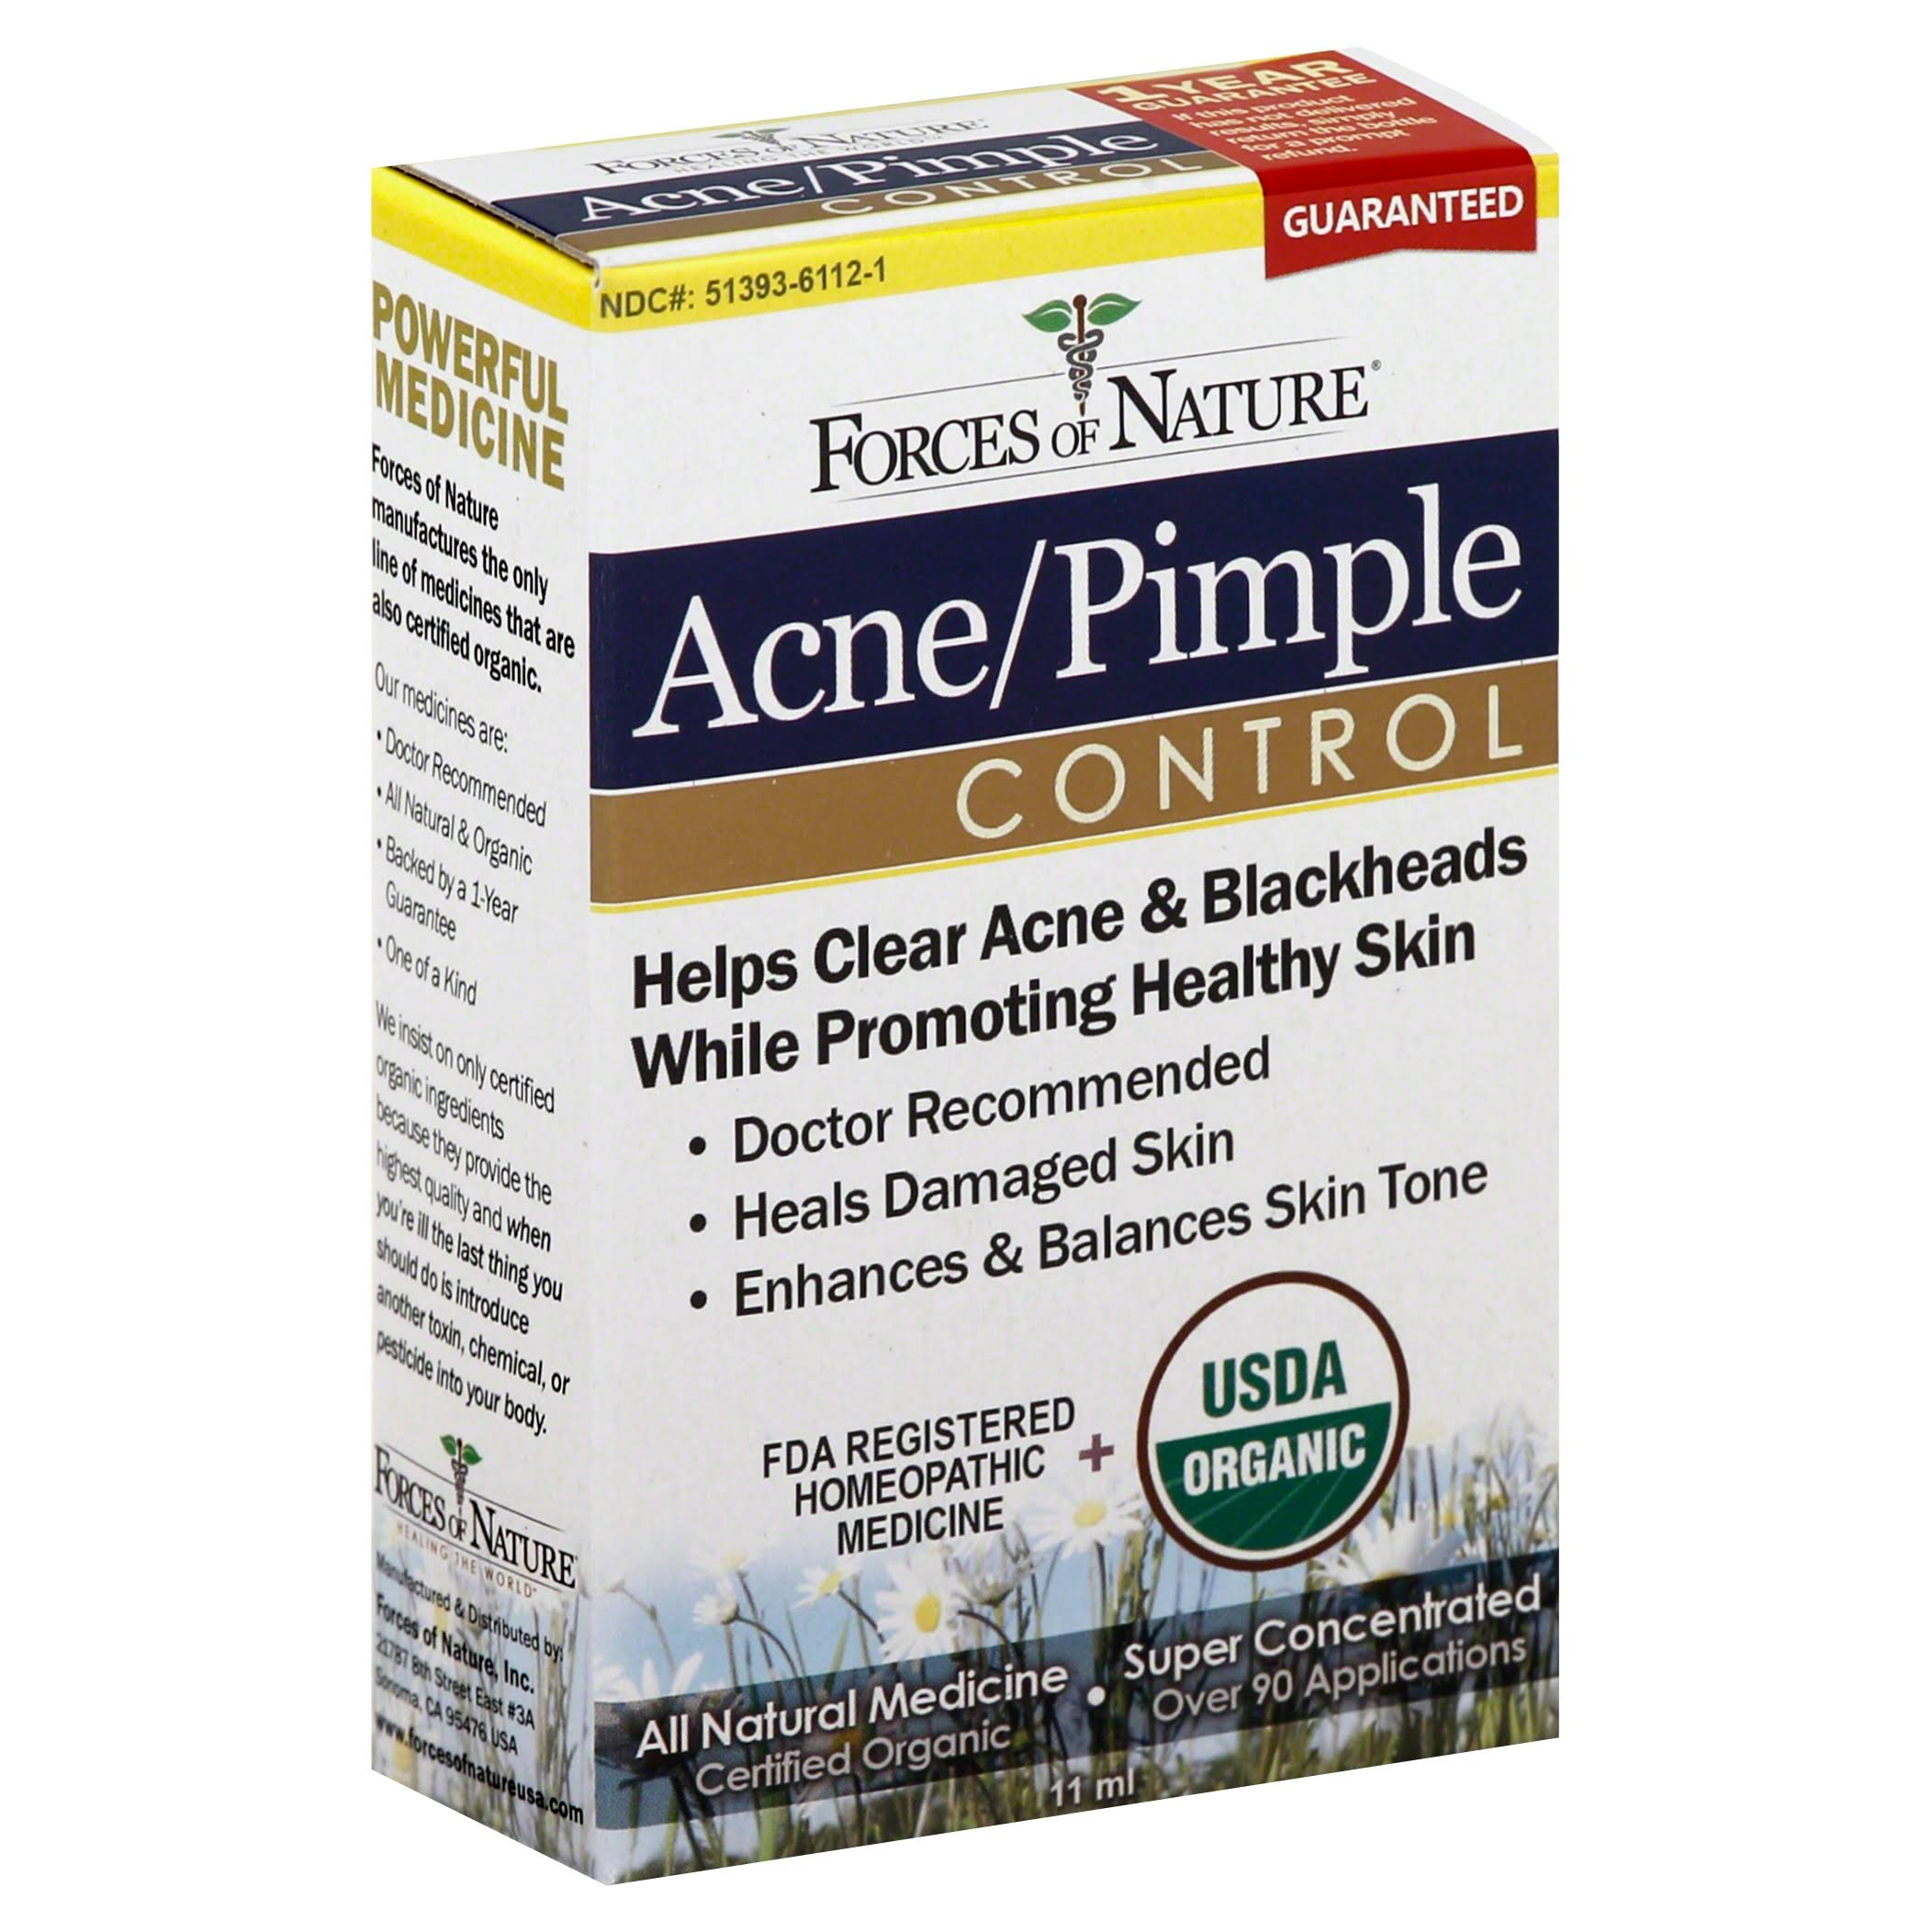 Forces of Nature Acne & Pimple Control - 0.37oz